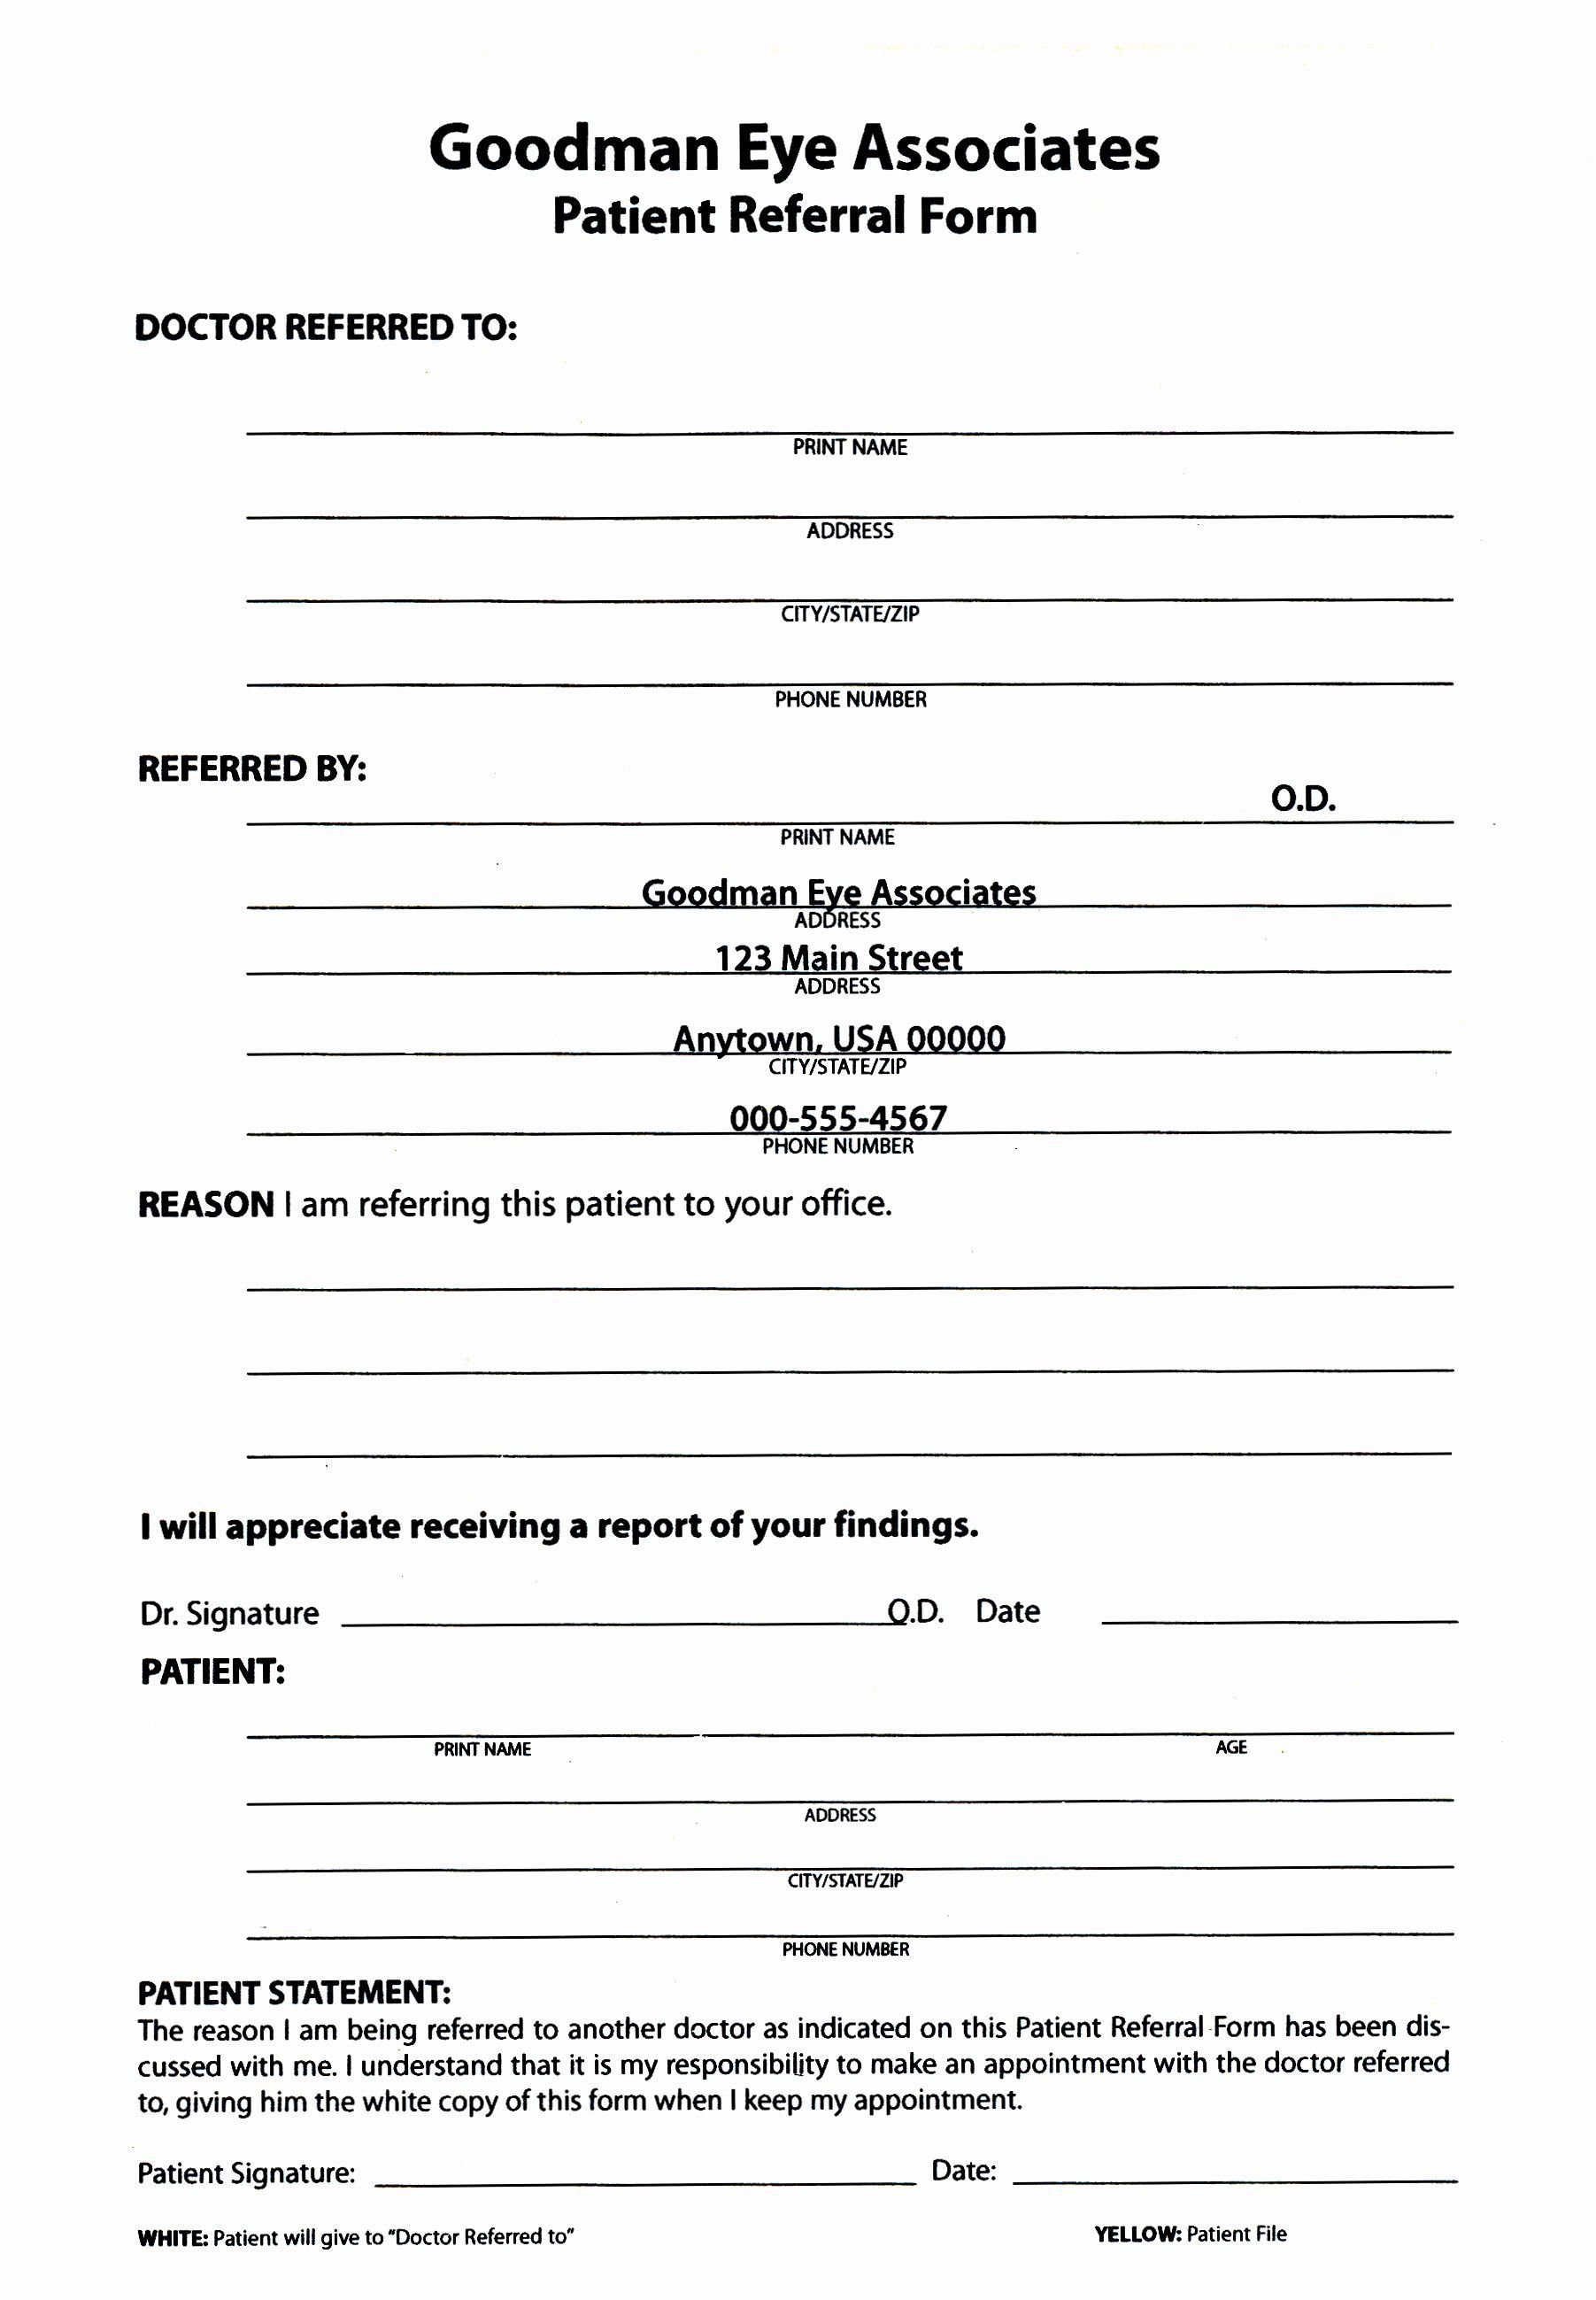 000 Simple Medical Referral Form Template Sample  Dental Patient Doctor Free PhysicianFull